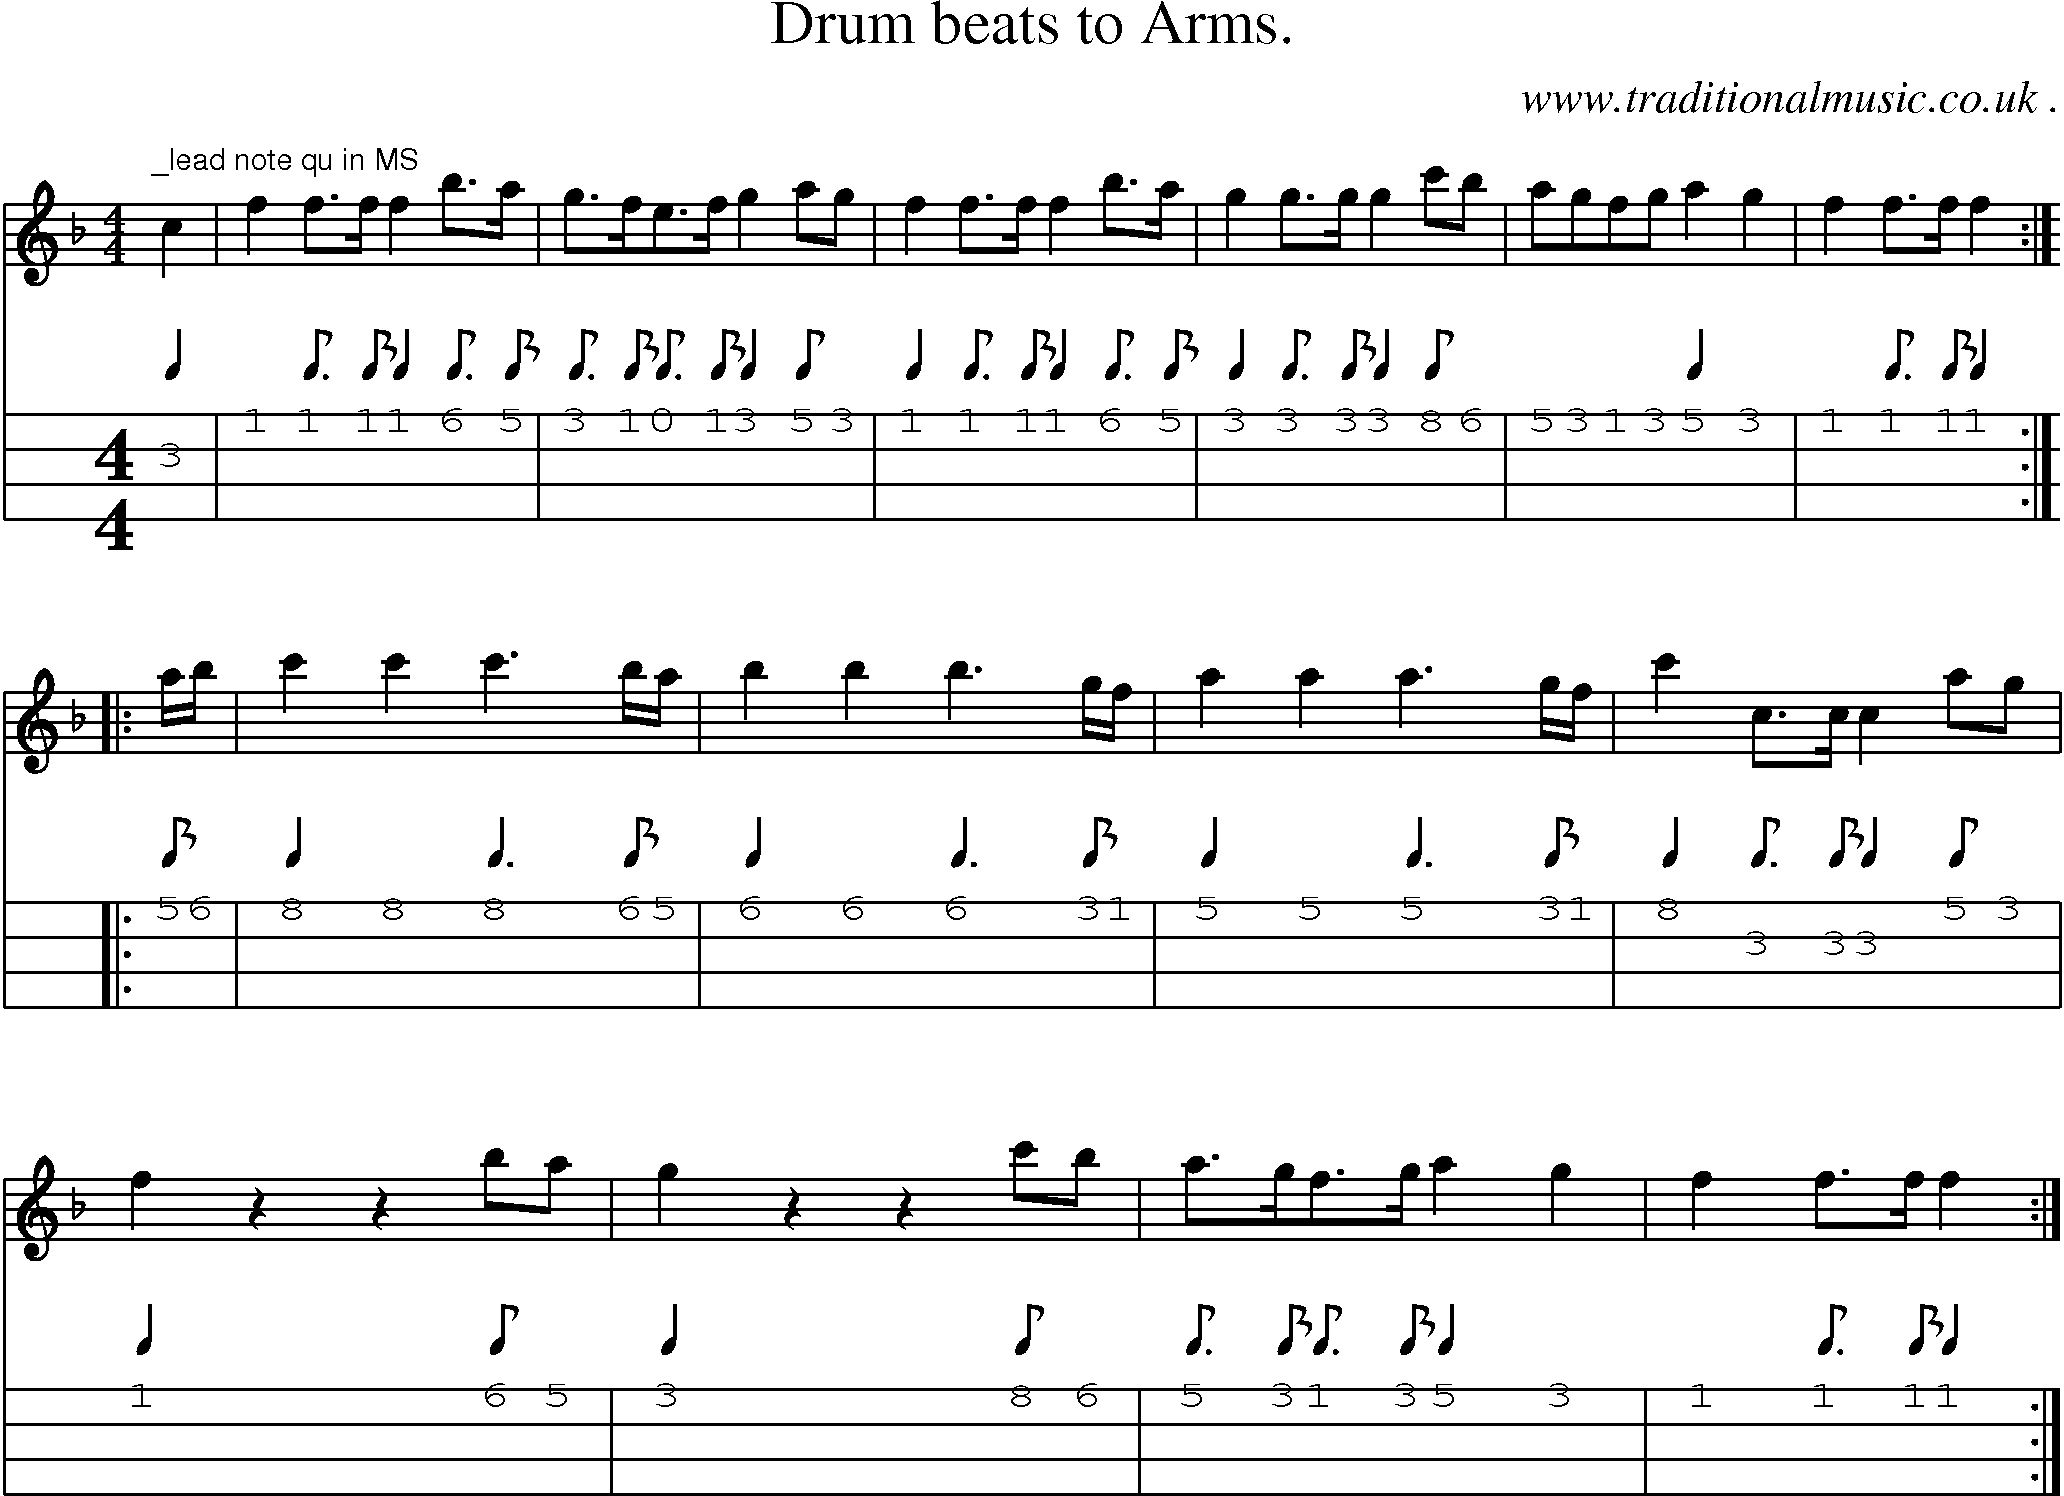 Folk and Traditional Music, Sheet-Music, Mandolin tab, midi, mp3 and PDF for: Drum Beats To Arms